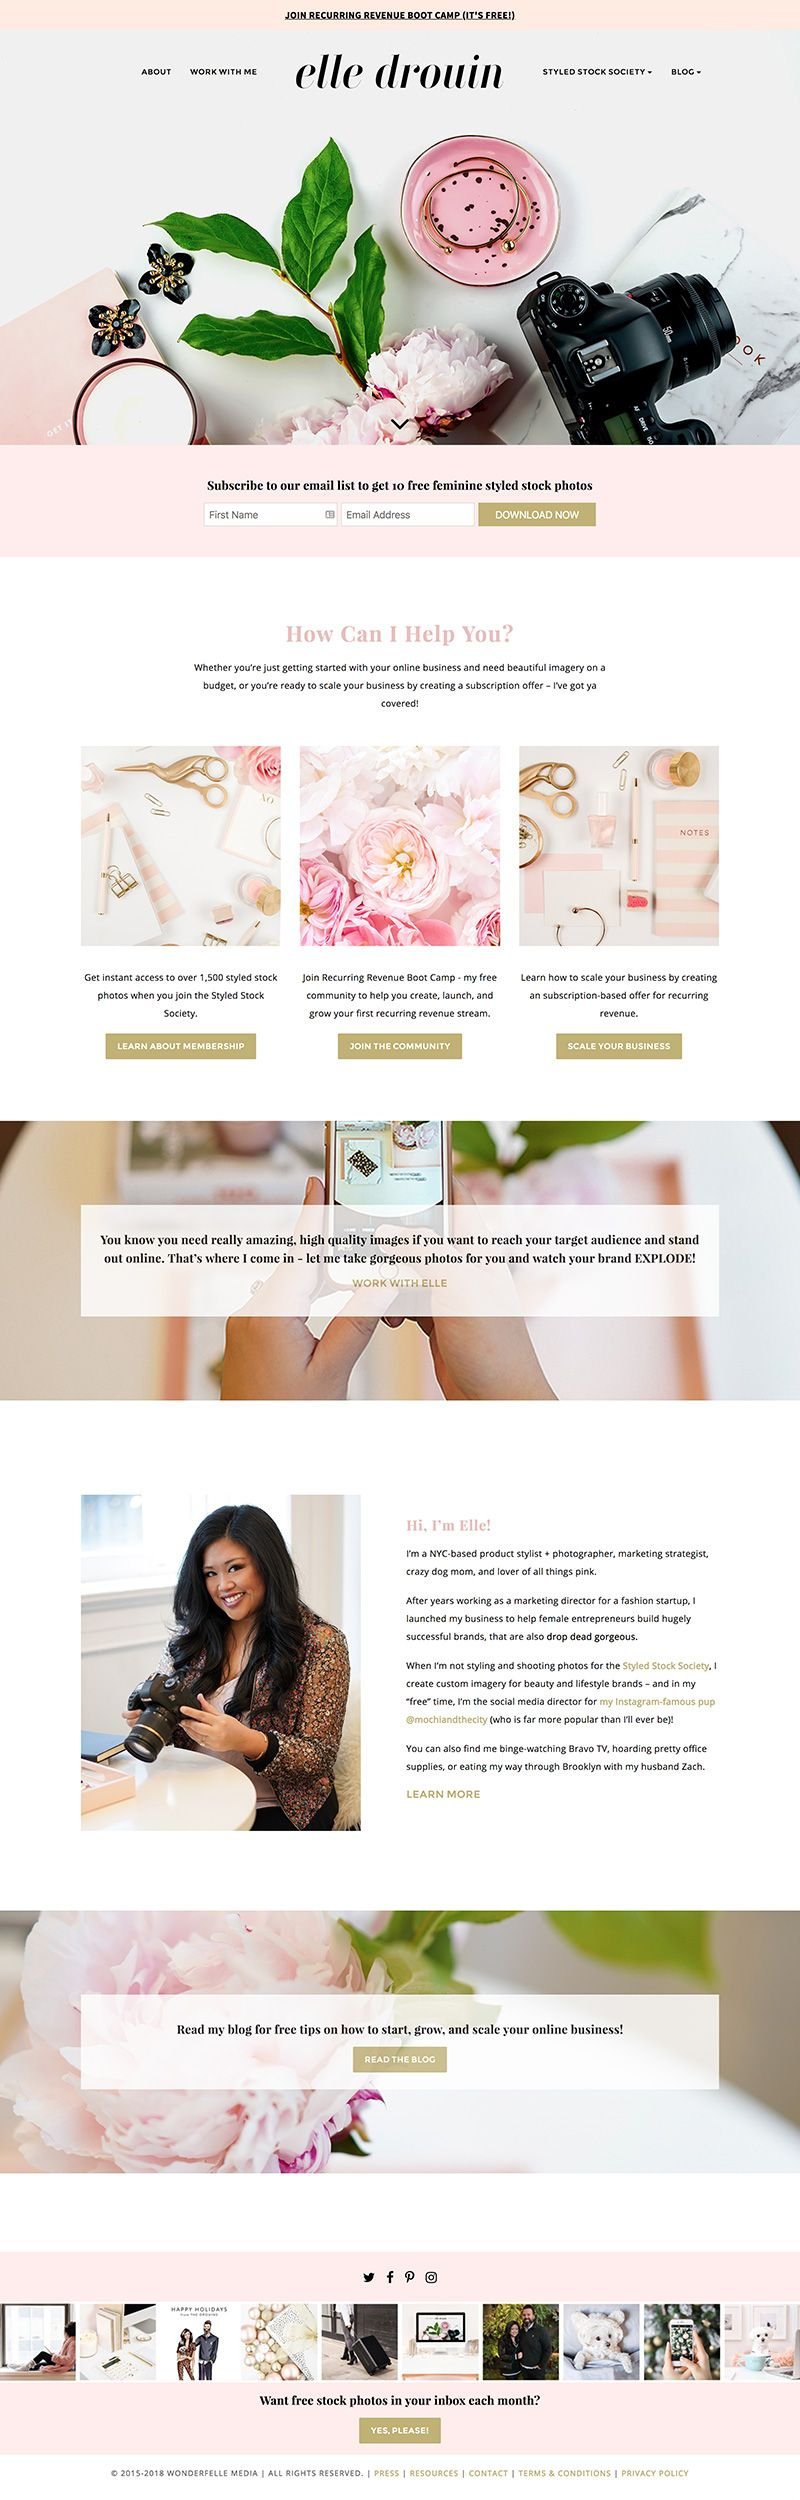 Maintenance Services website inspirations at your coffee break? Browse for more WordPress #templates! // Regular price: $75 // Sources available:.PHP This theme is widgetized #Maintenance Services #WordPress #landingpages #landing #pages #coffee